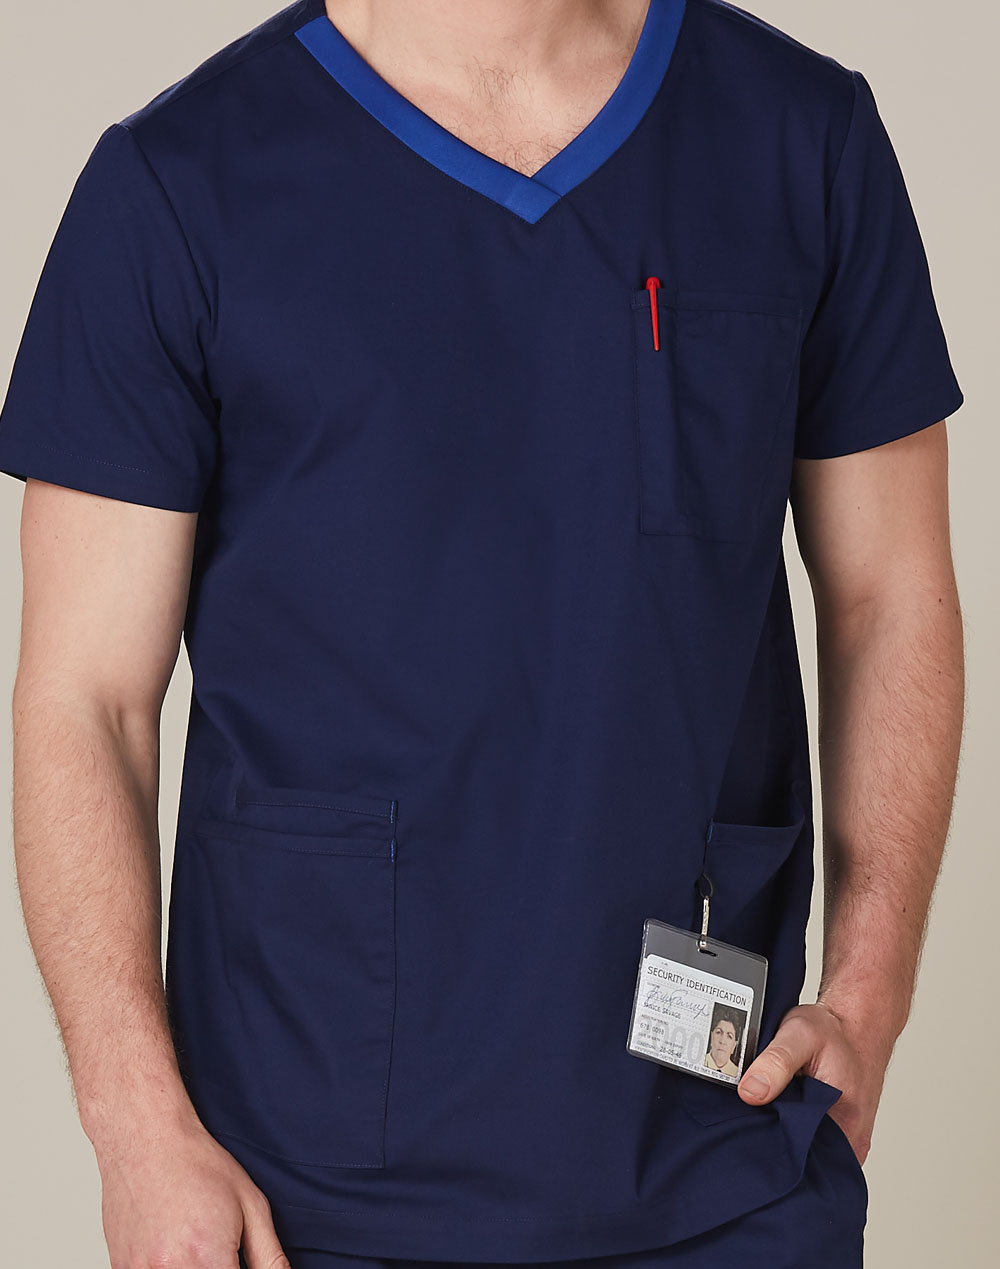 Buy Online Mens v-Neck Contrast Trim Scrub Tops in Australia